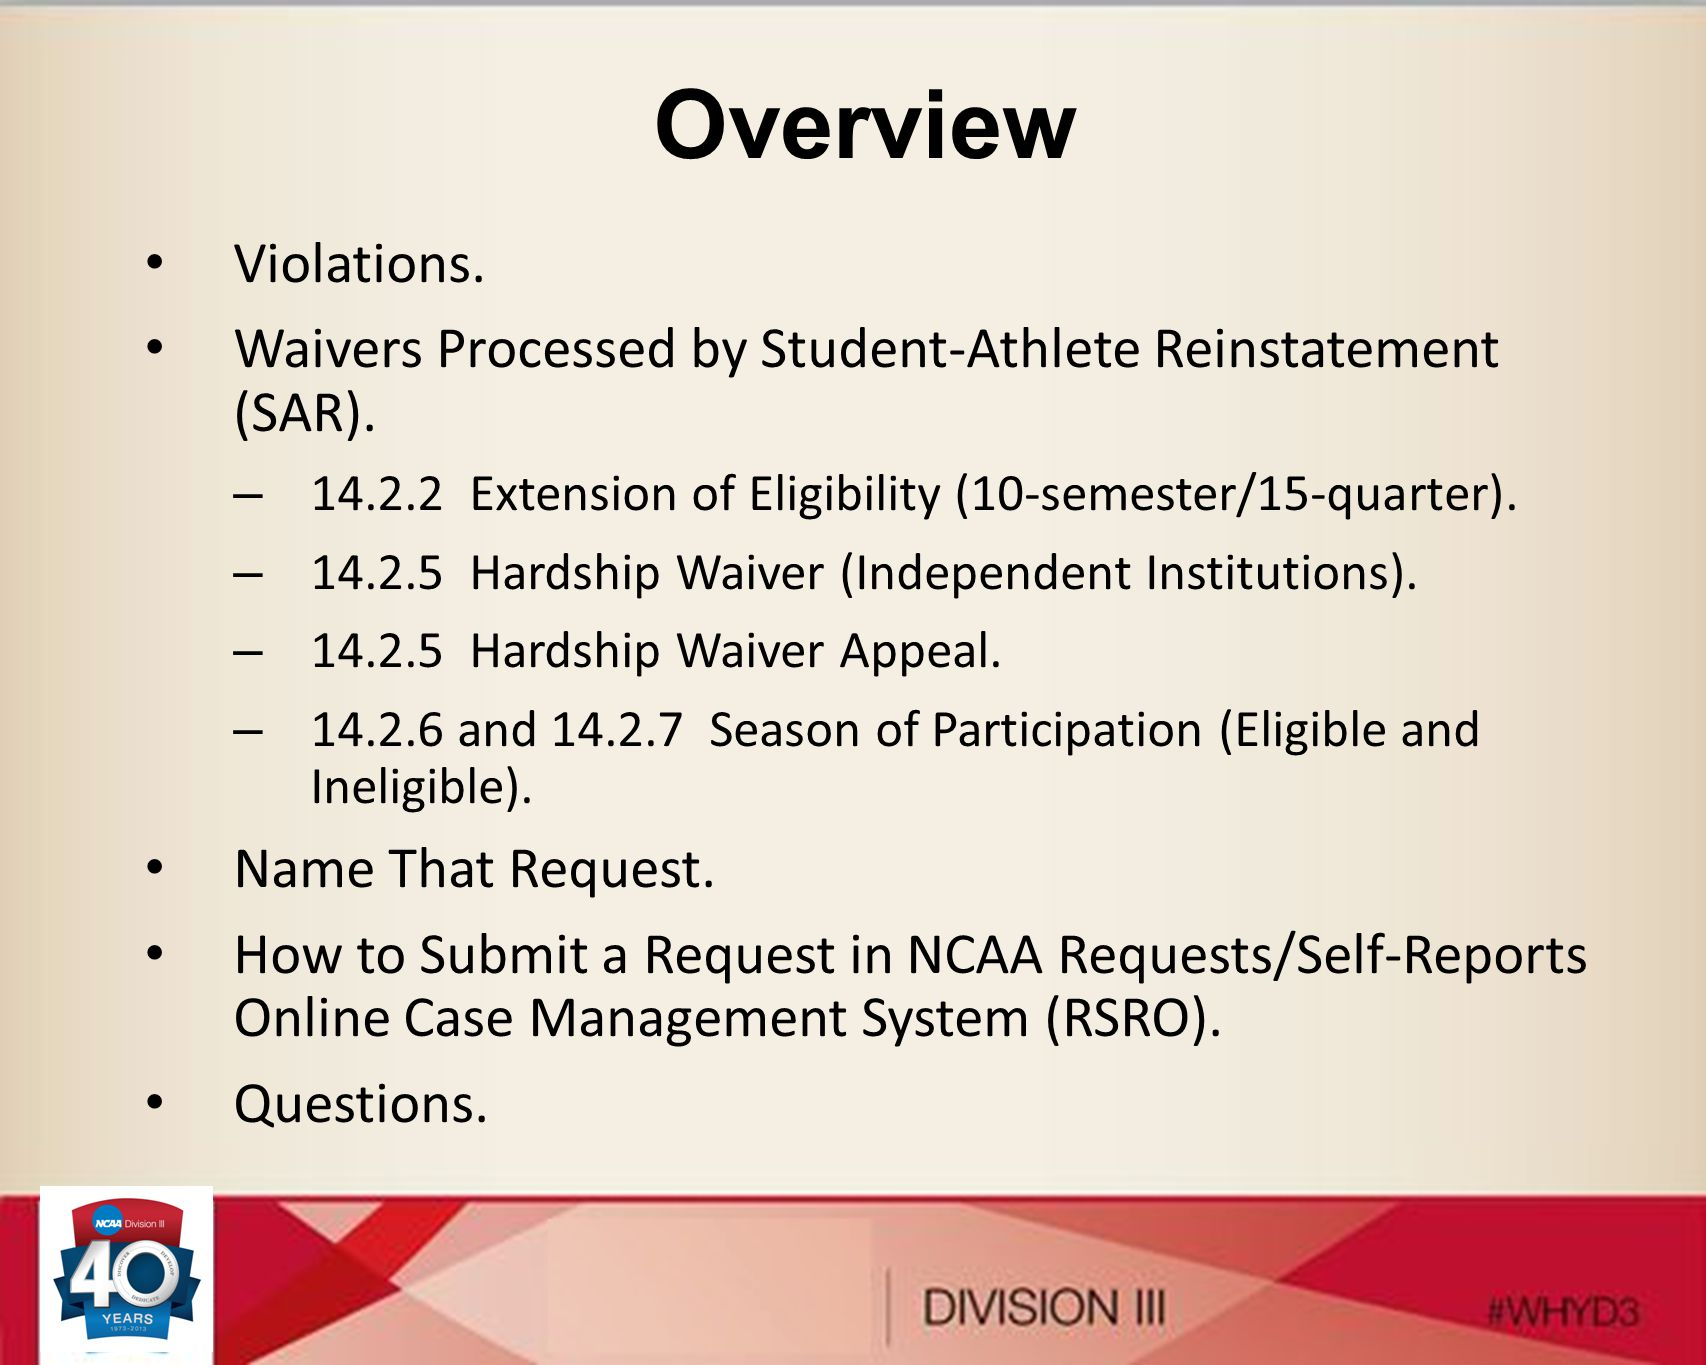 Overview Violations. Waivers Processed by Student-Athlete Reinstatement (SAR) Extension of Eligibility (10-semester/15-quarter).